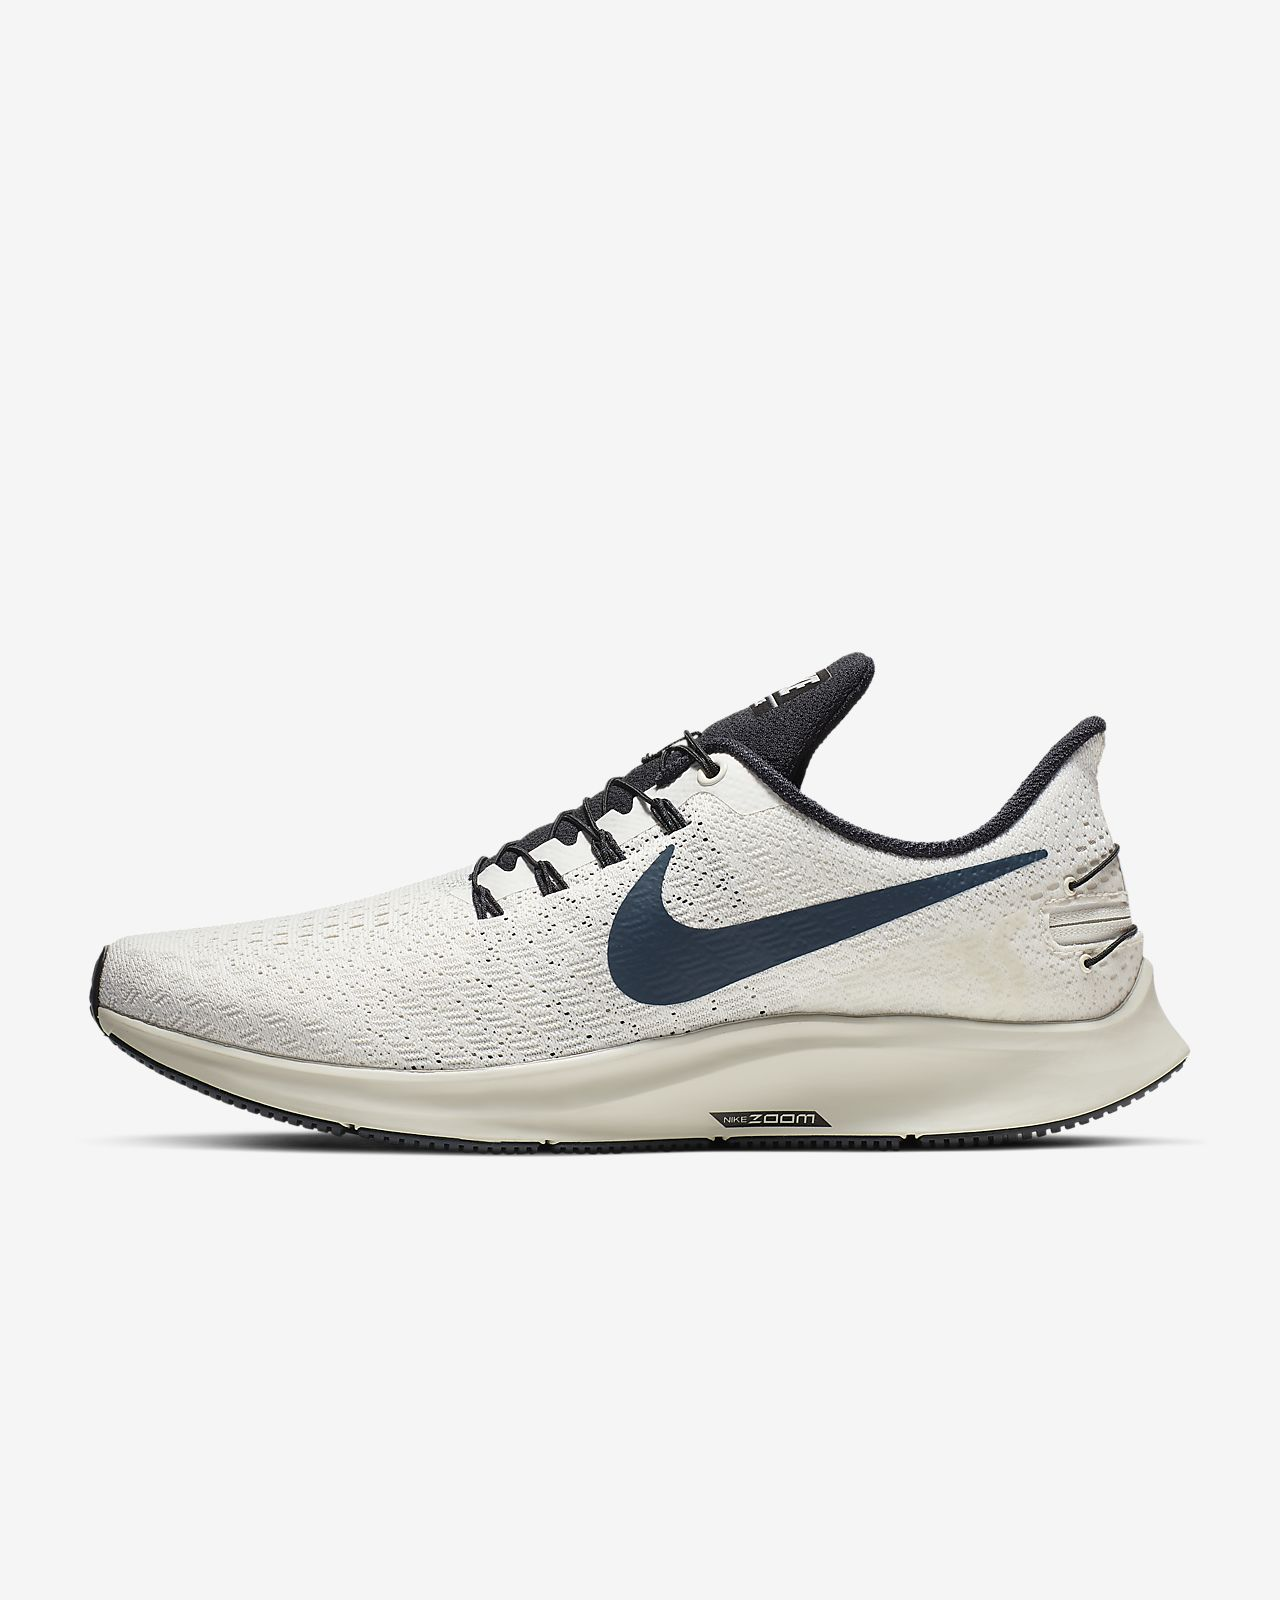 huge discount 5cc9e e4ecf ... Nike Air Zoom Pegasus 35 FlyEase Men s Running Shoe